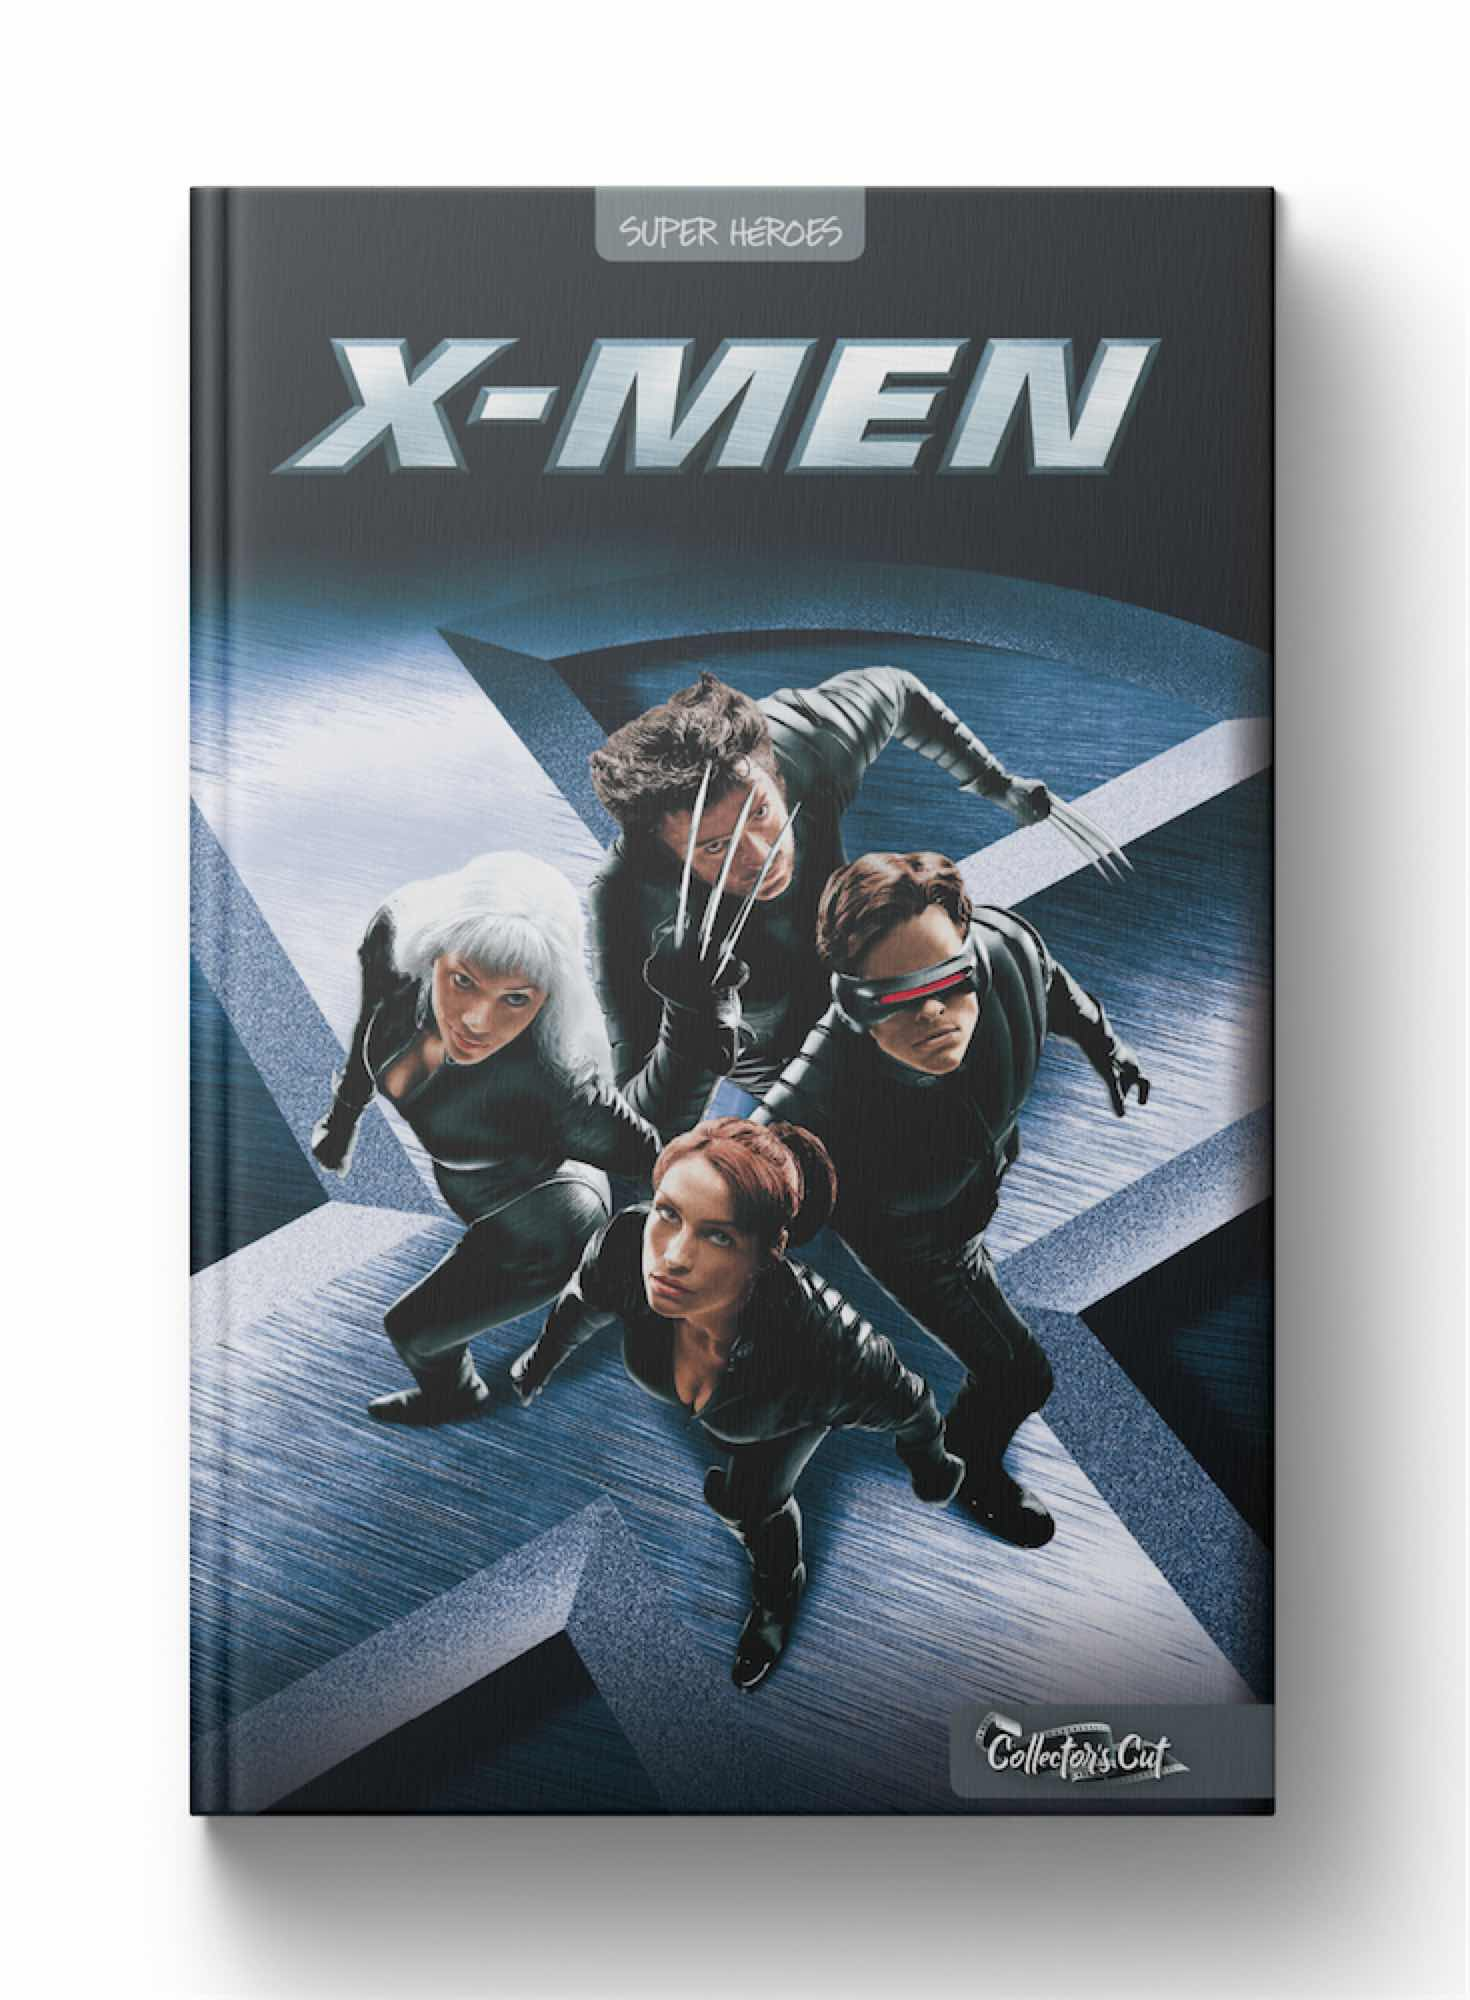 X-MEN (COLLECTOR'S CUT)